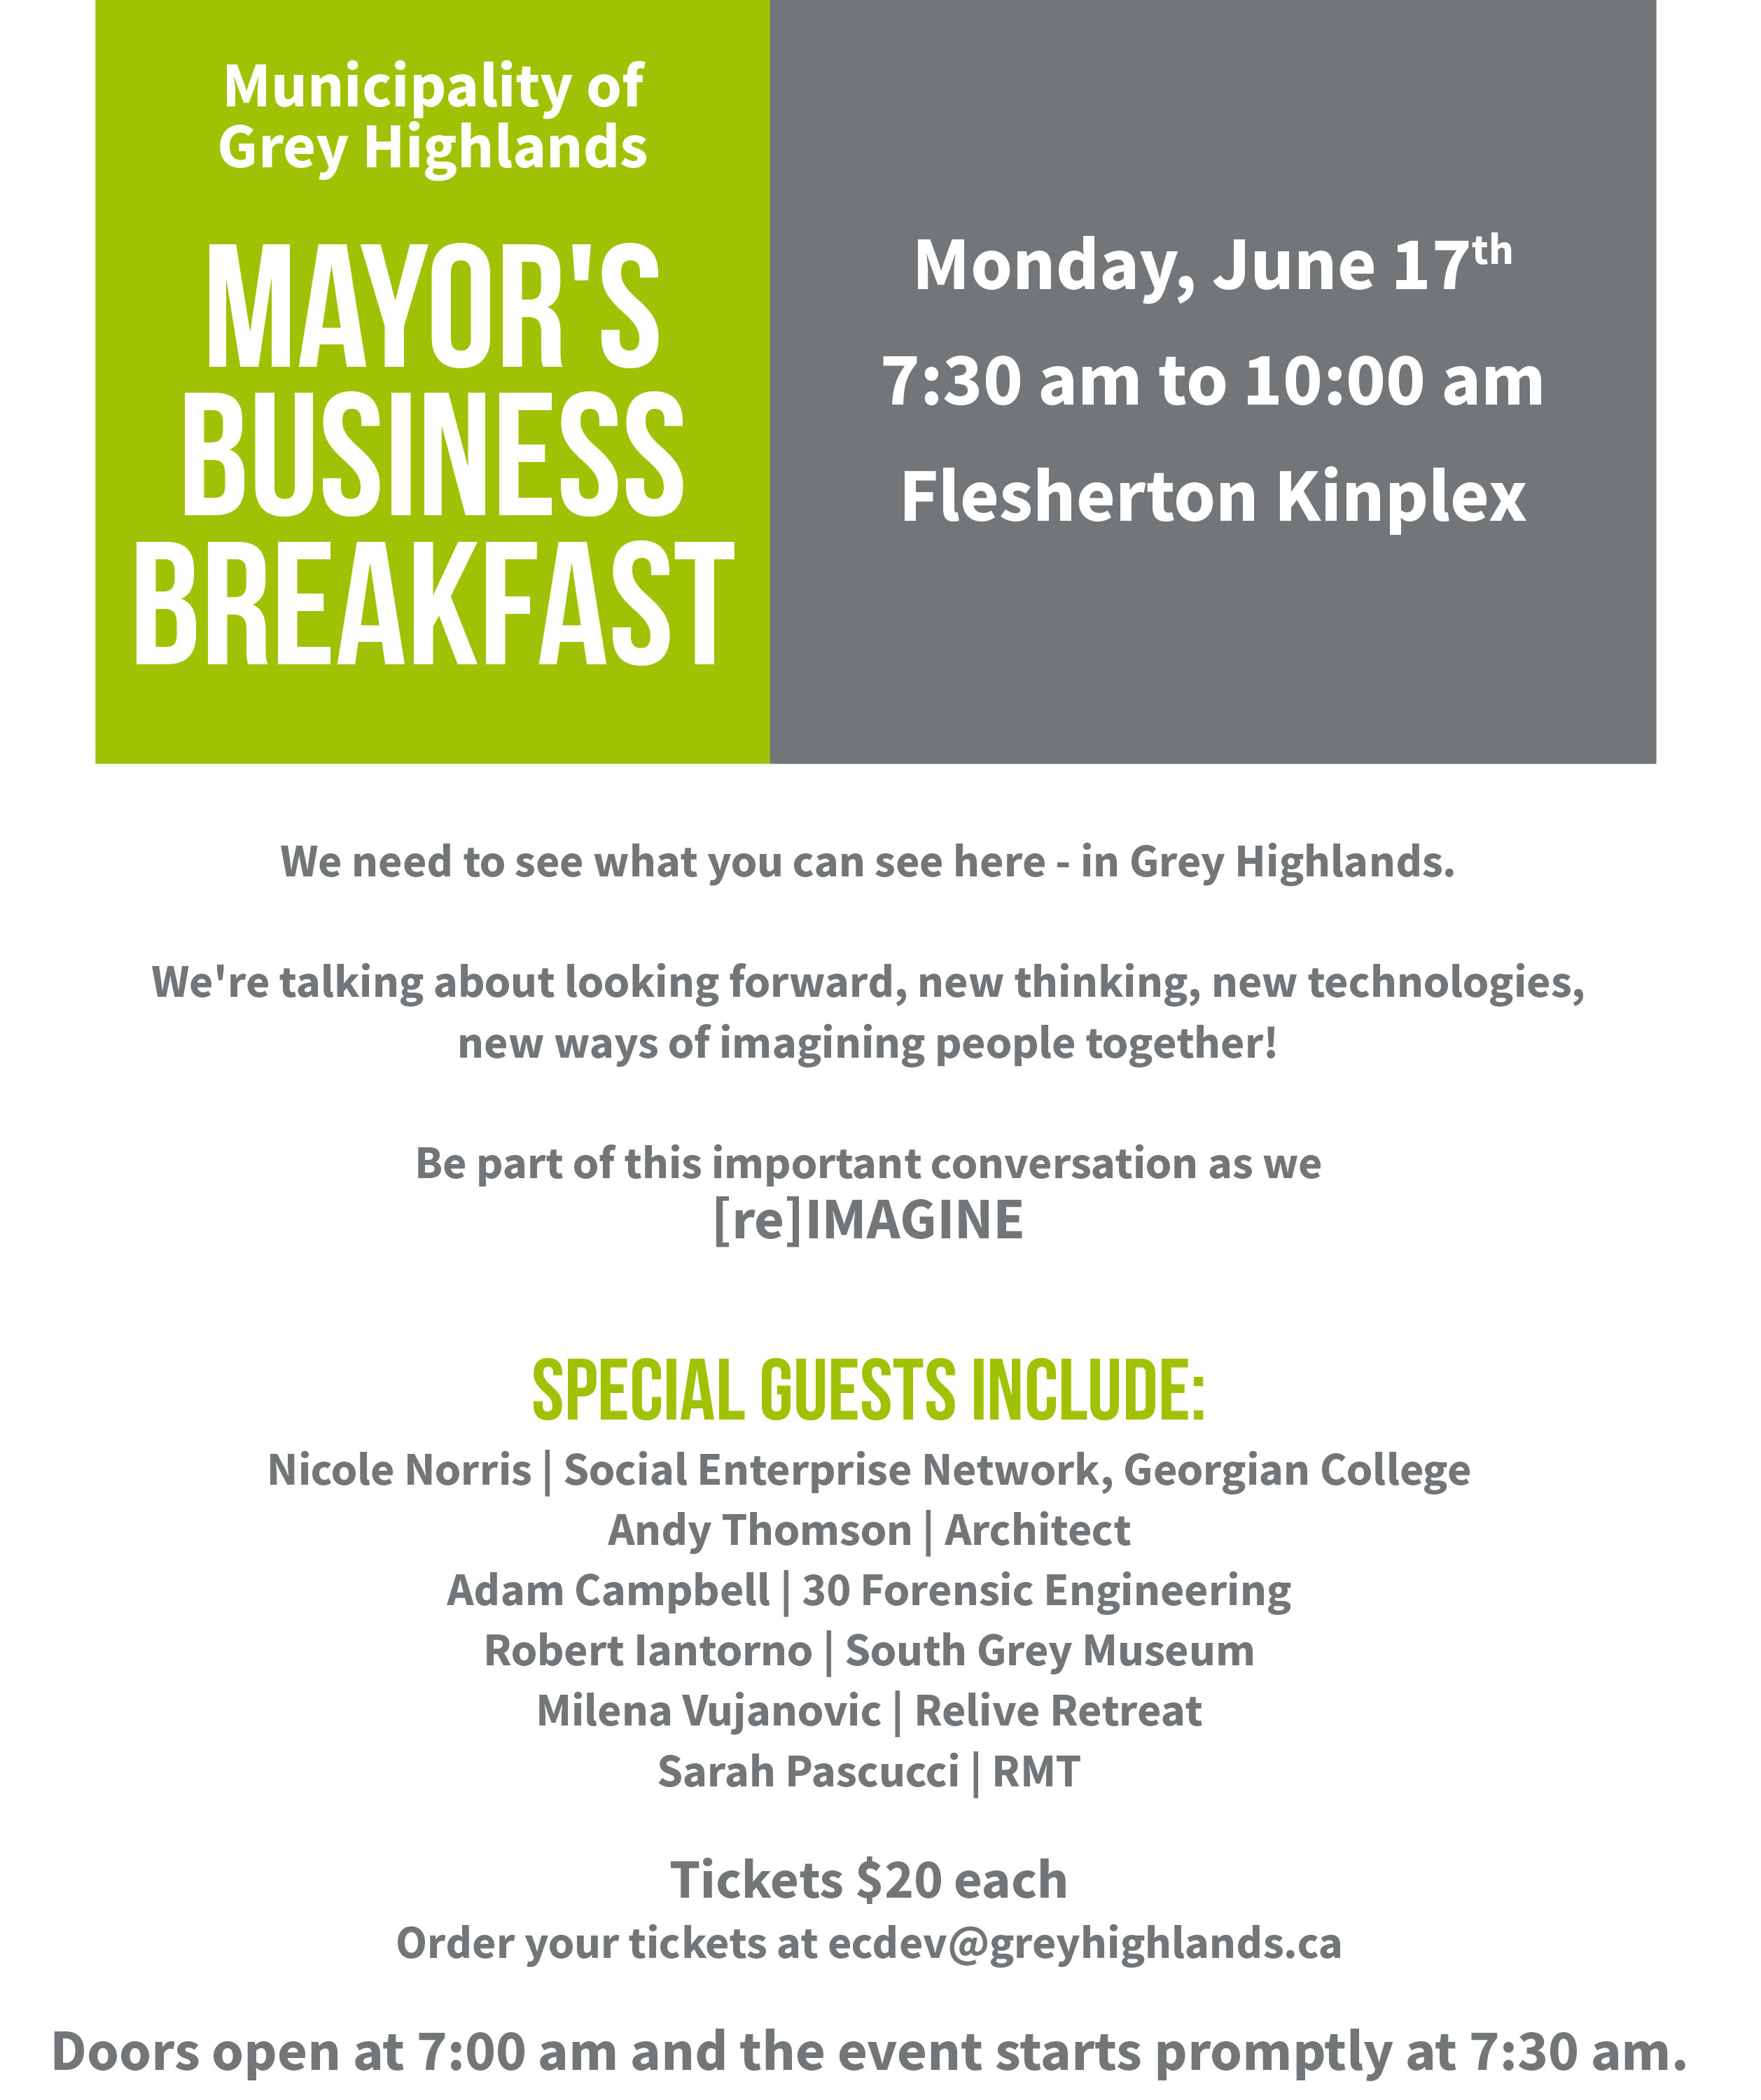 Mayor's Business Breakfast!